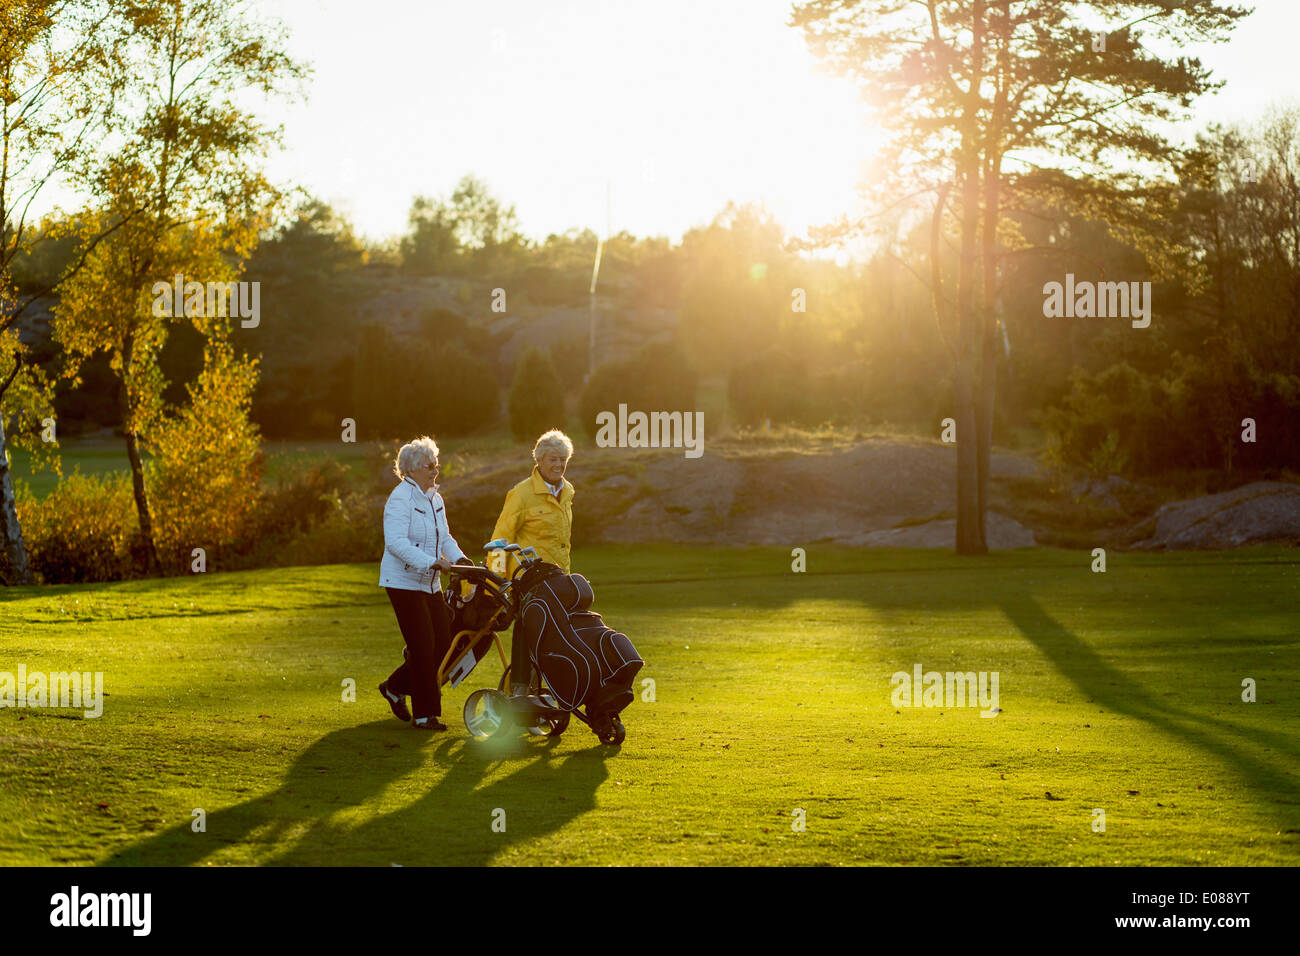 Senior women walking with golf bags on grassy area - Stock Image